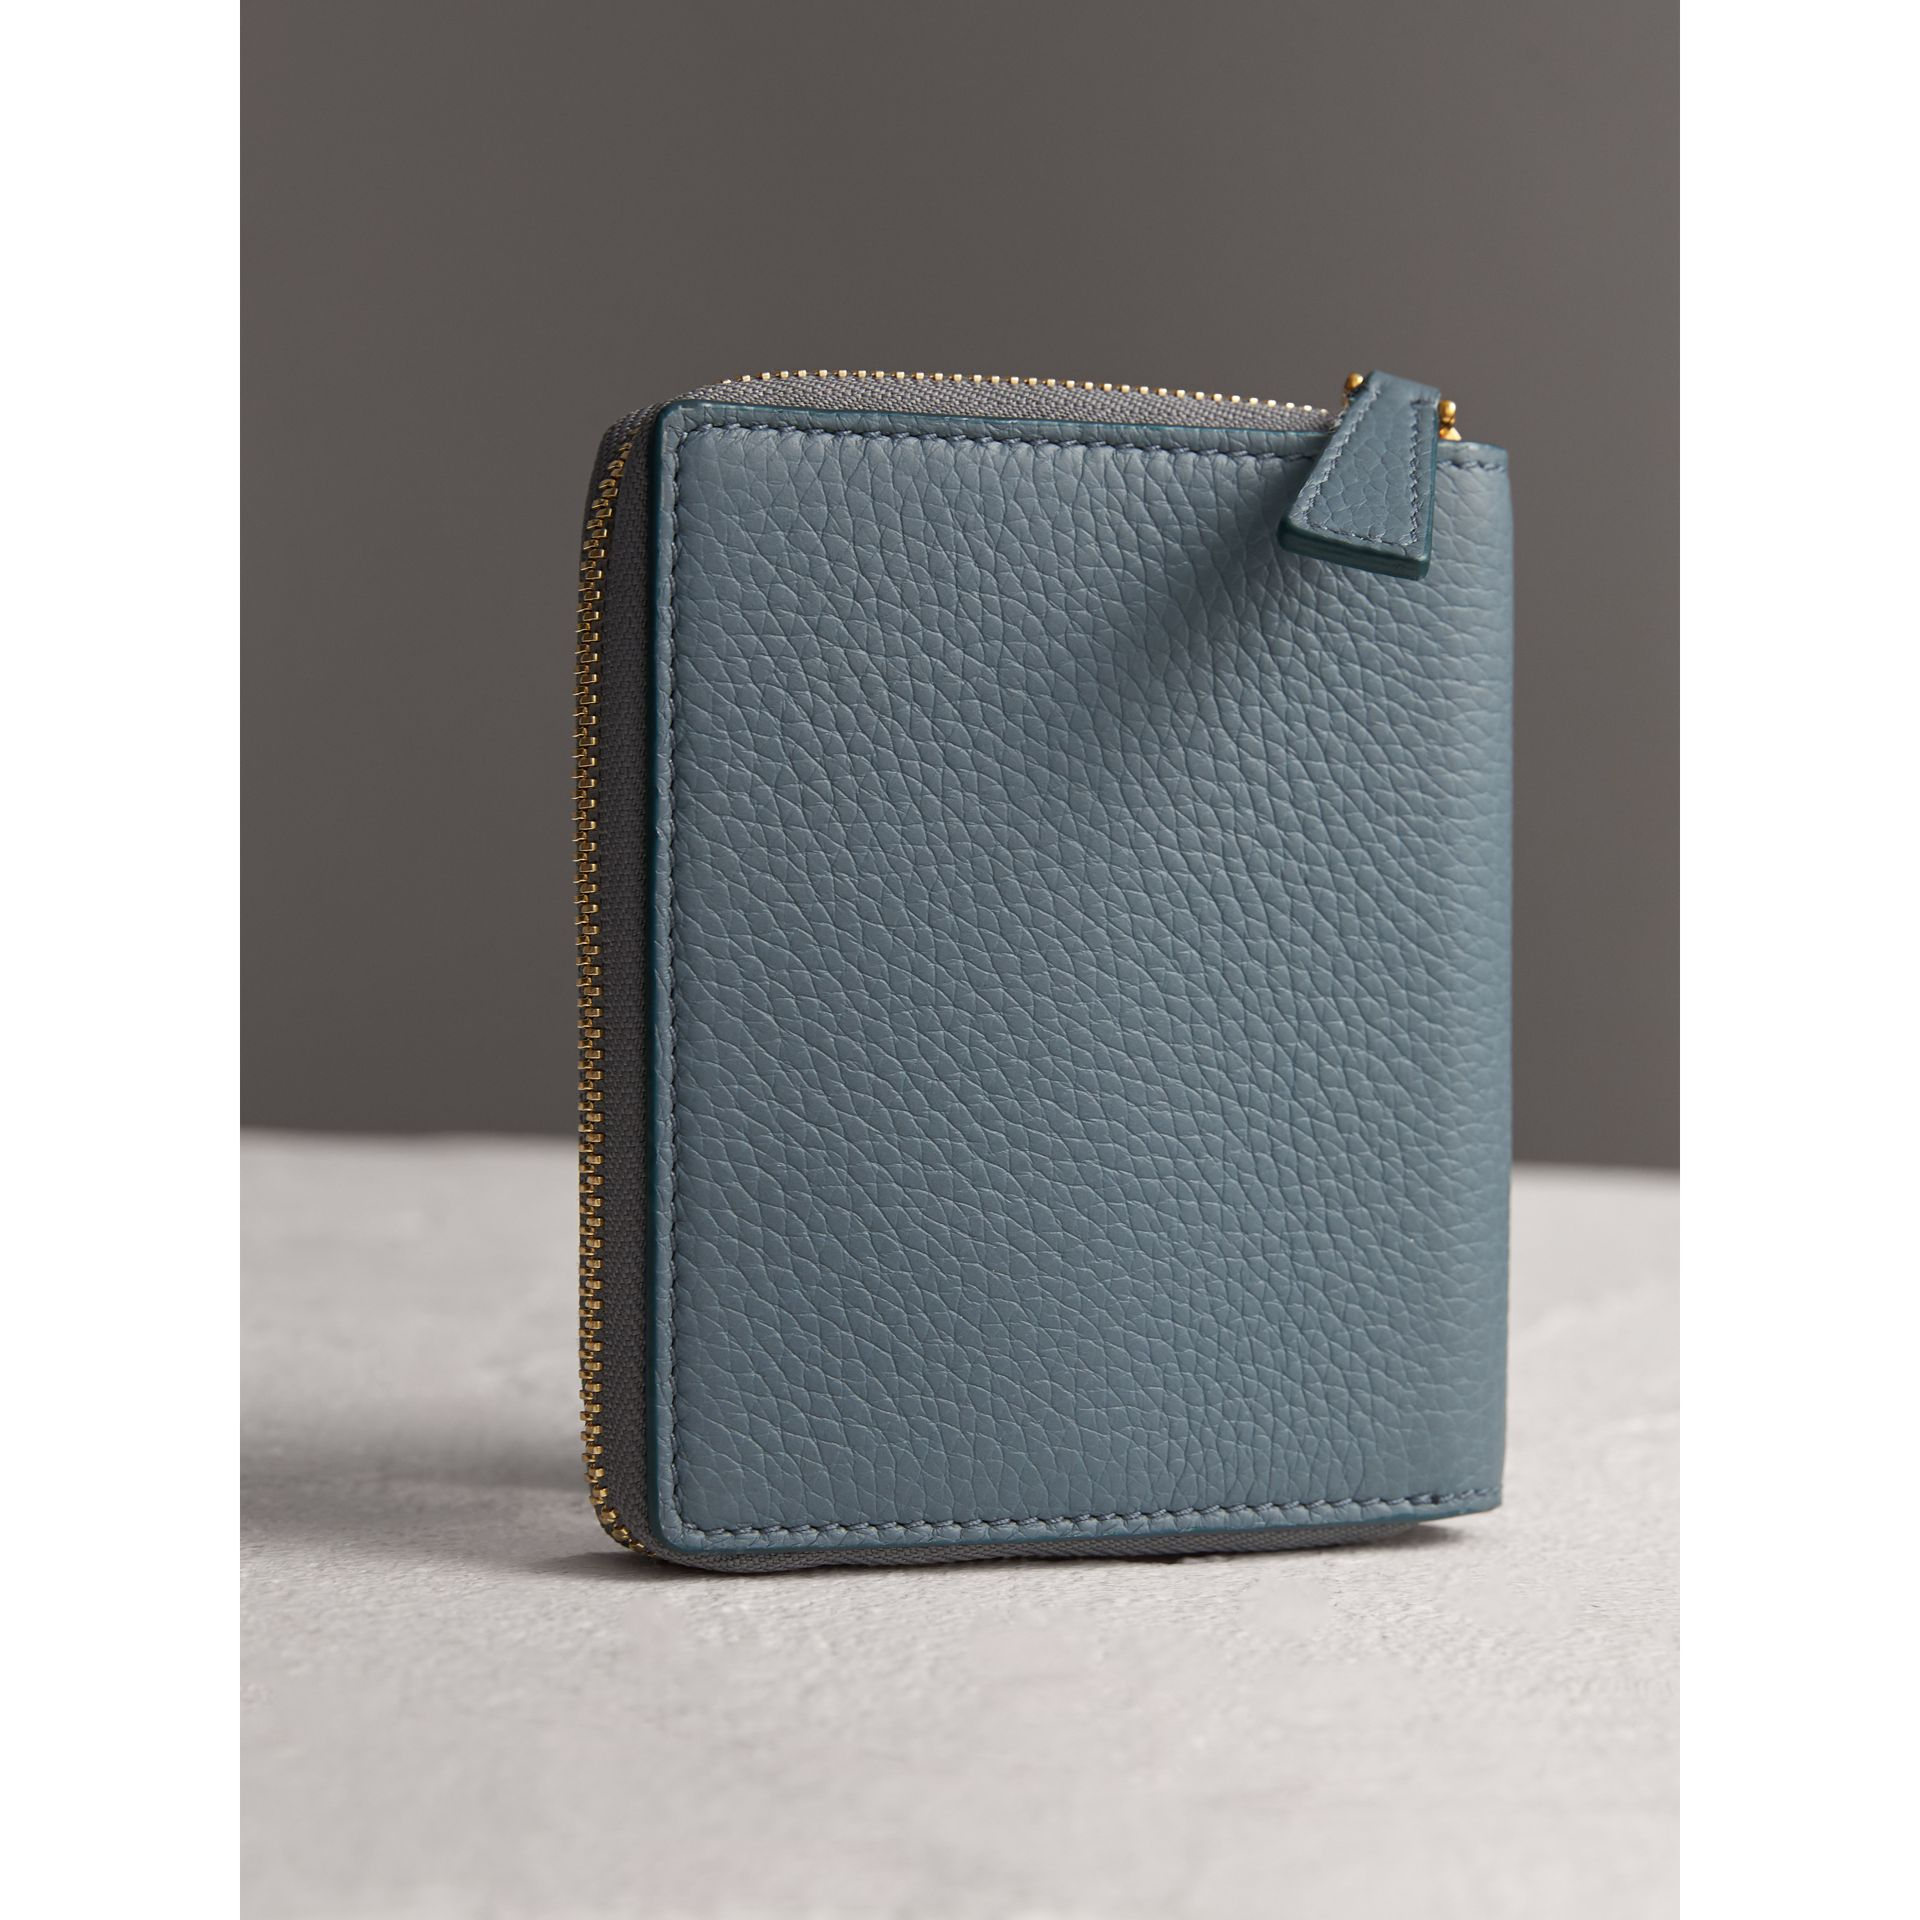 Embossed Grainy Leather Ziparound A6 Notebook Case in Dusty Teal Blue | Burberry - gallery image 2